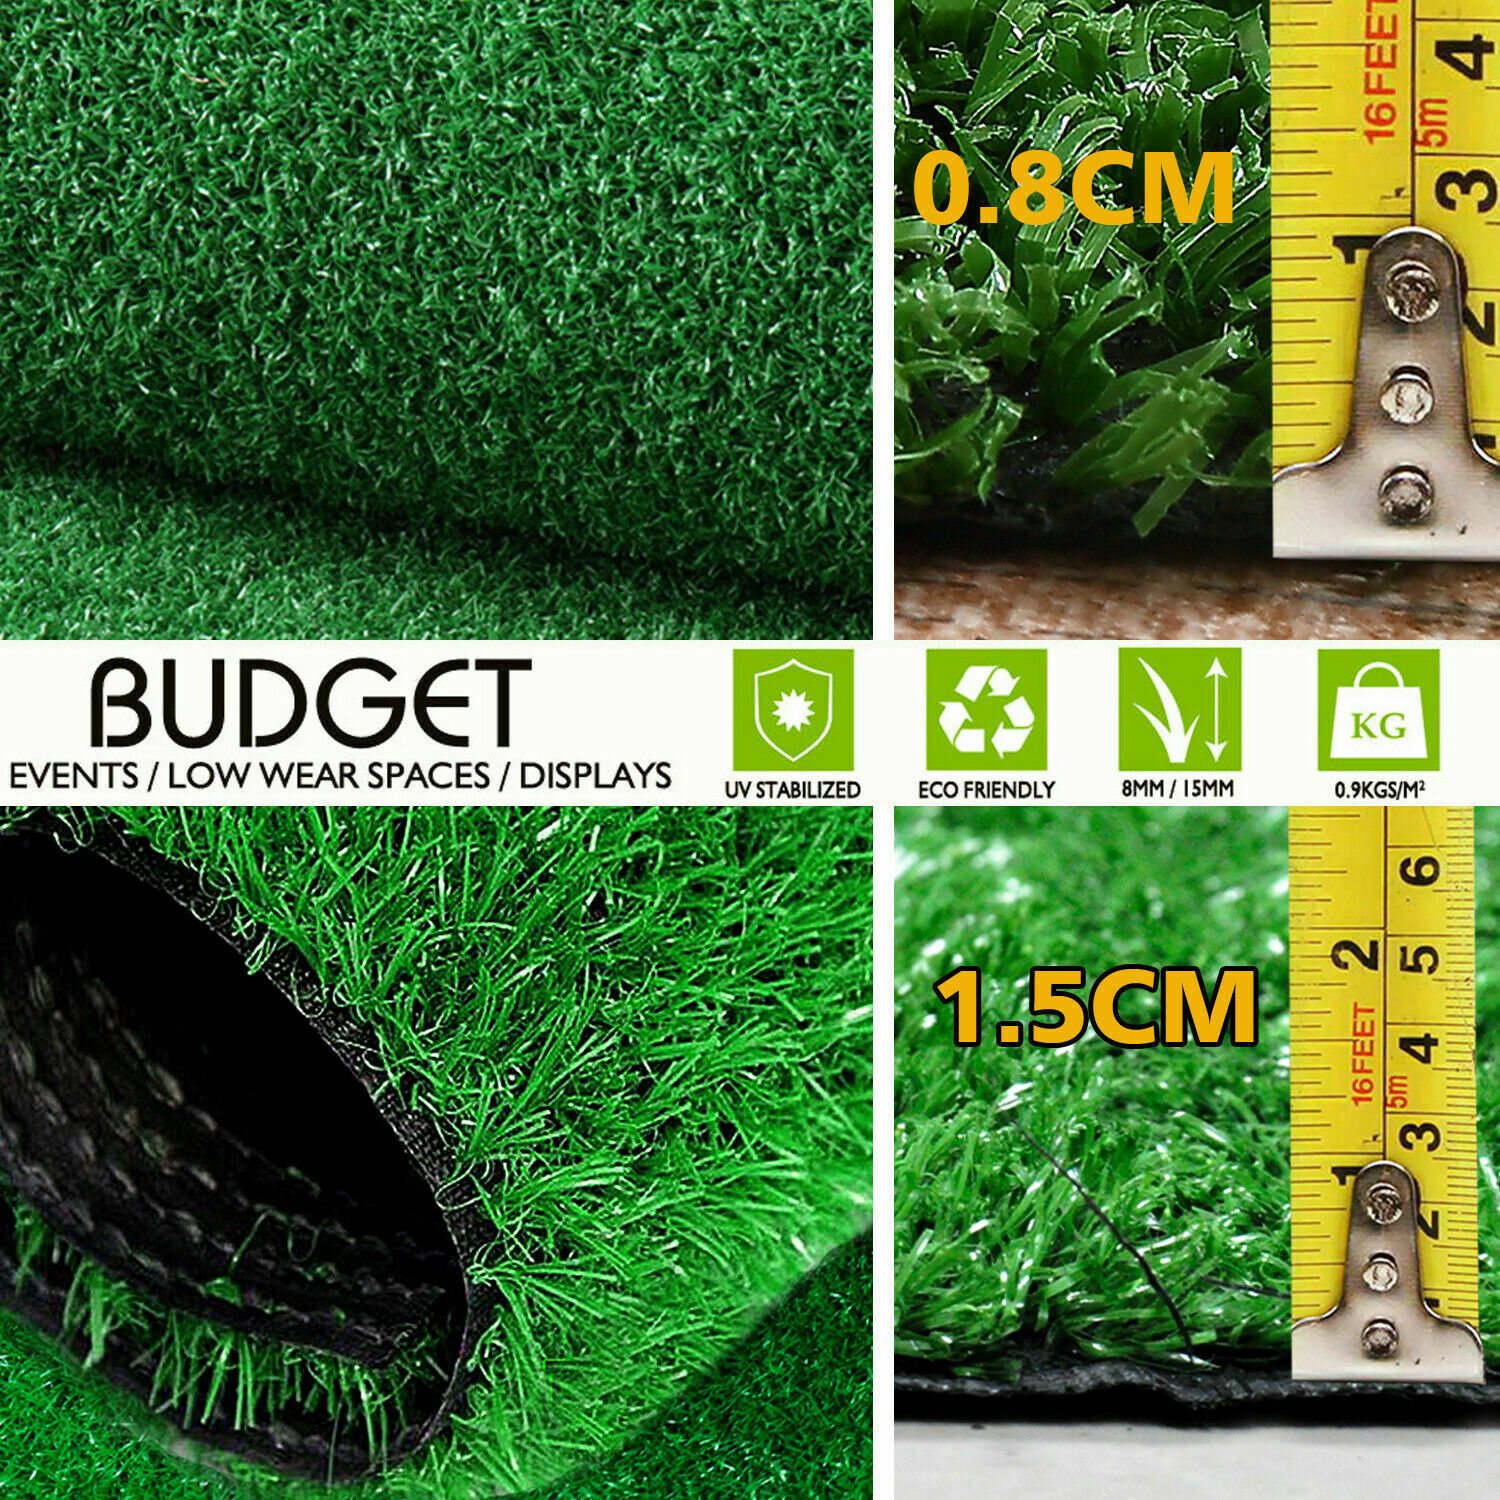 Synthetic-Grass-Turf-Decor-Artificial-Lawn-Fake-Plant-Plastic-Green-Flooring-Mat thumbnail 44